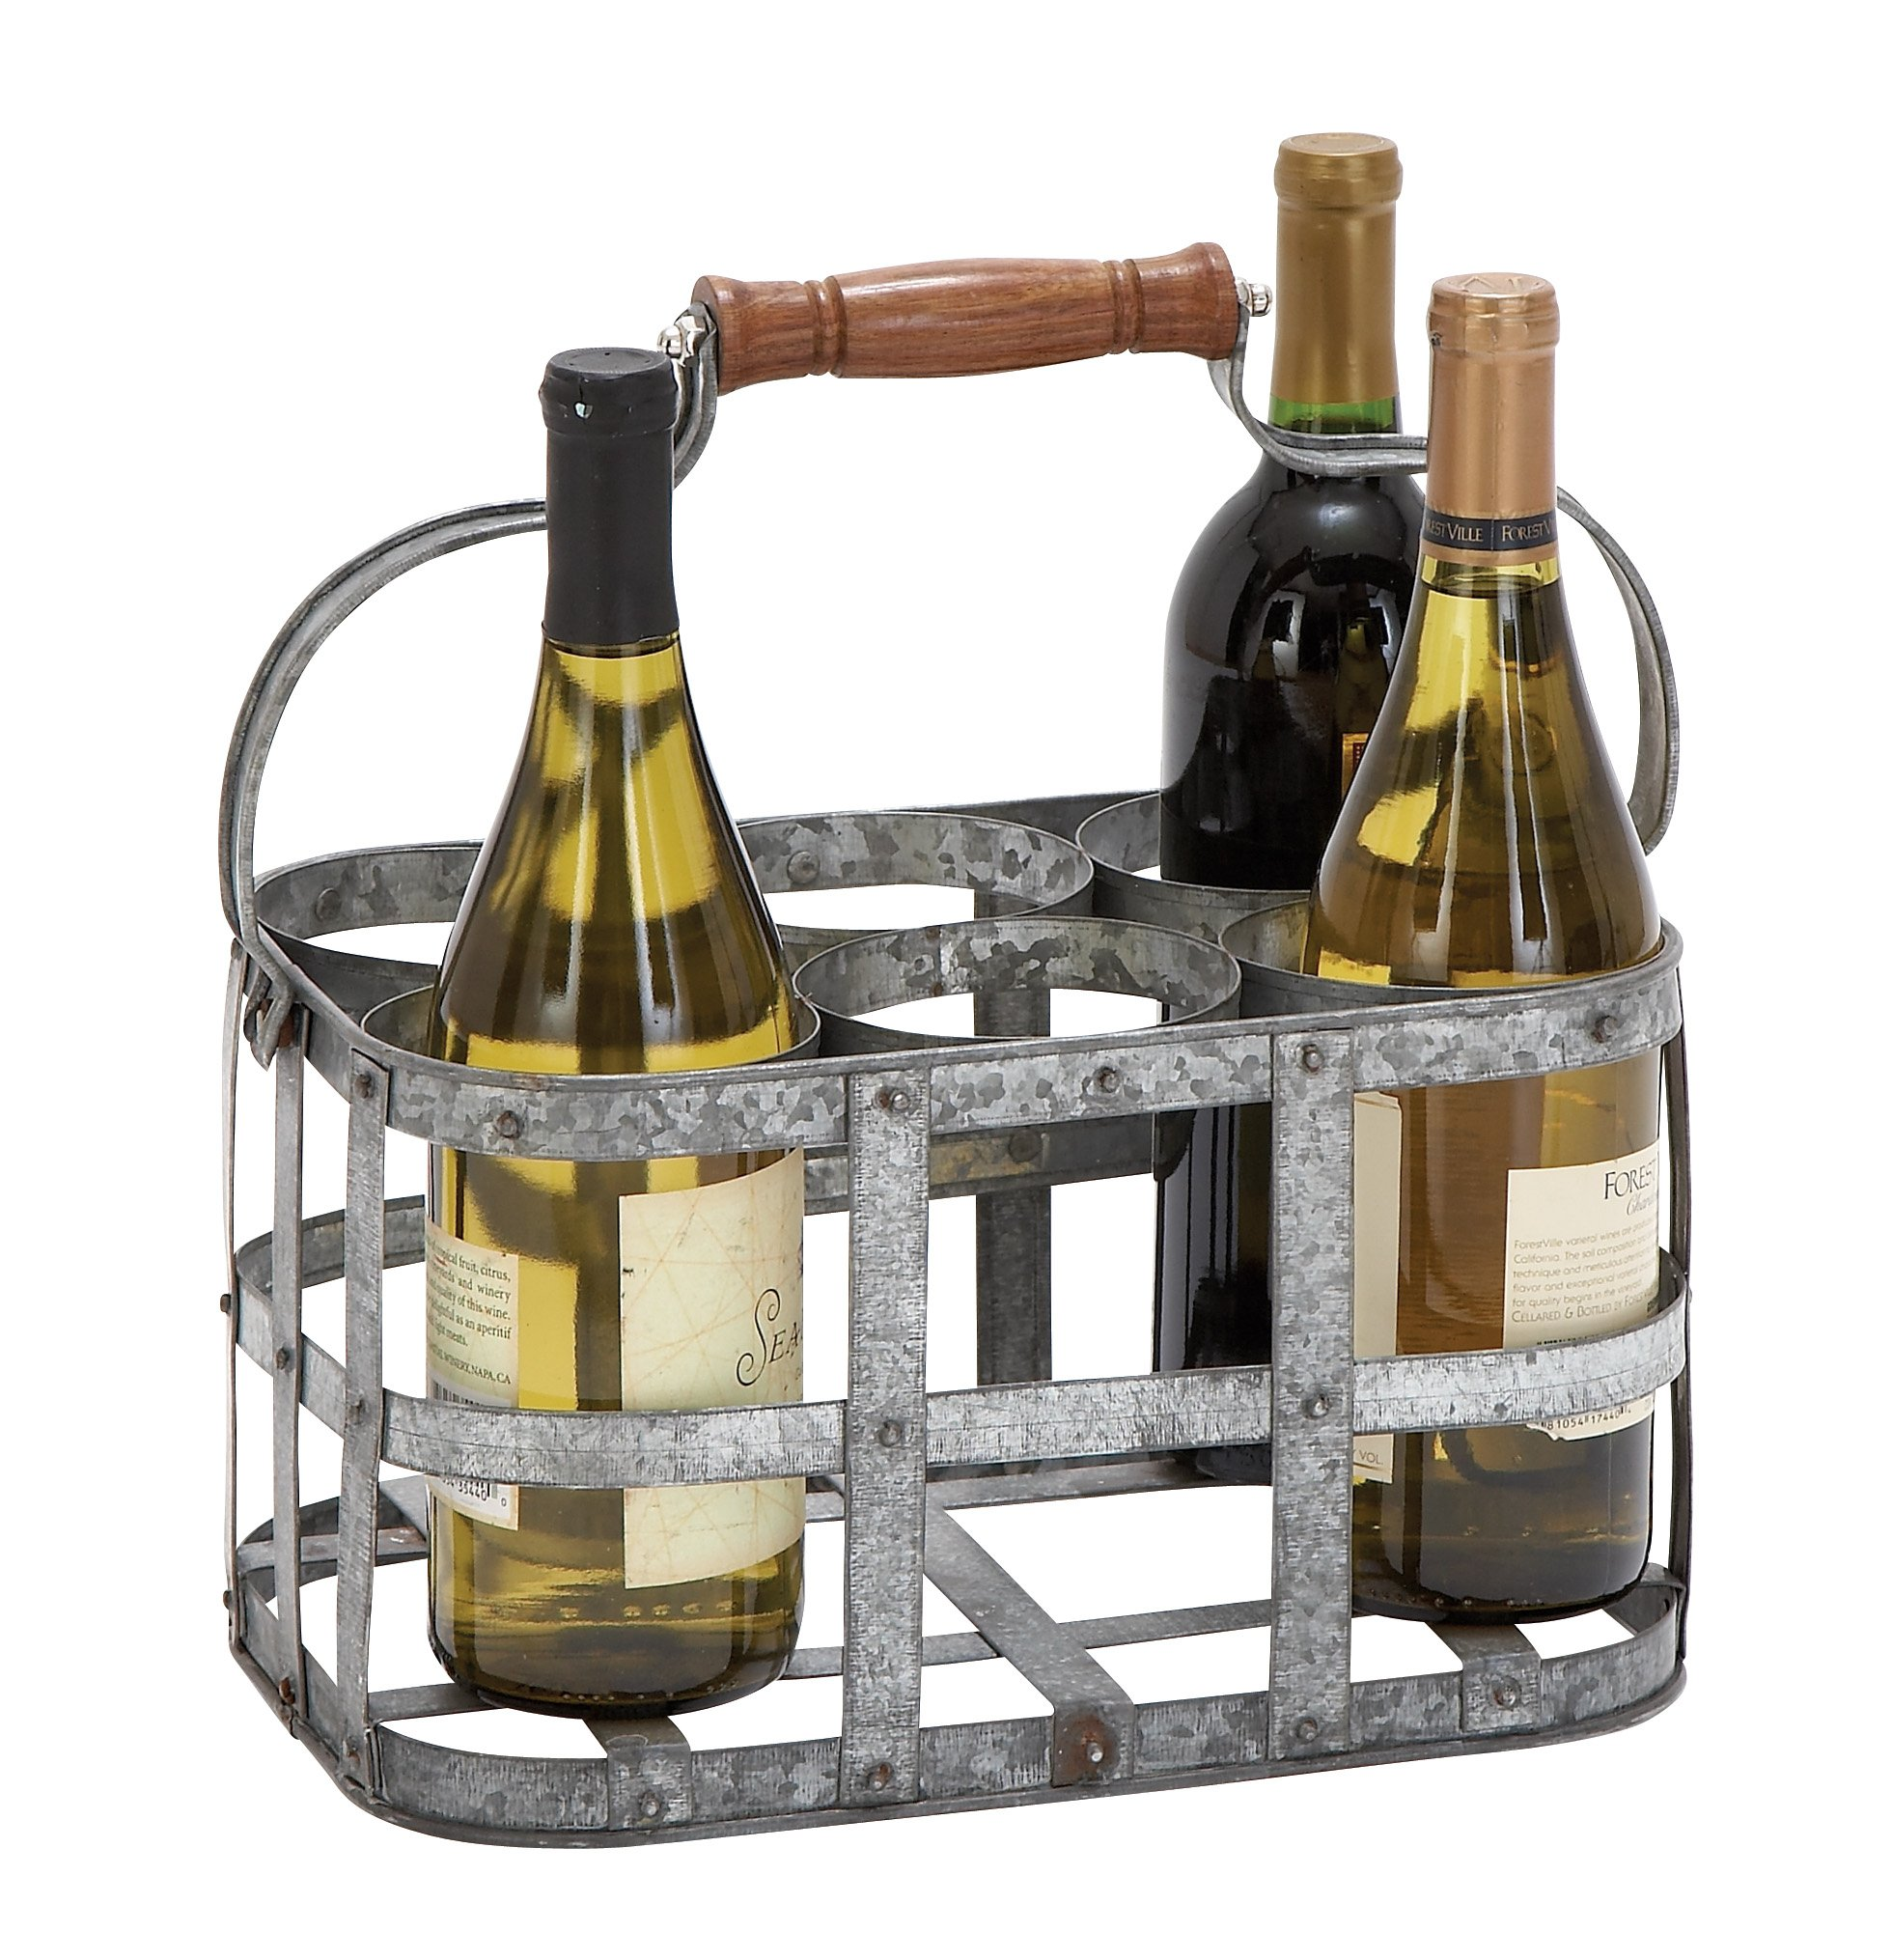 Deco 79 New Metal Wine Holder, 13 by 7-Inch by Deco 79